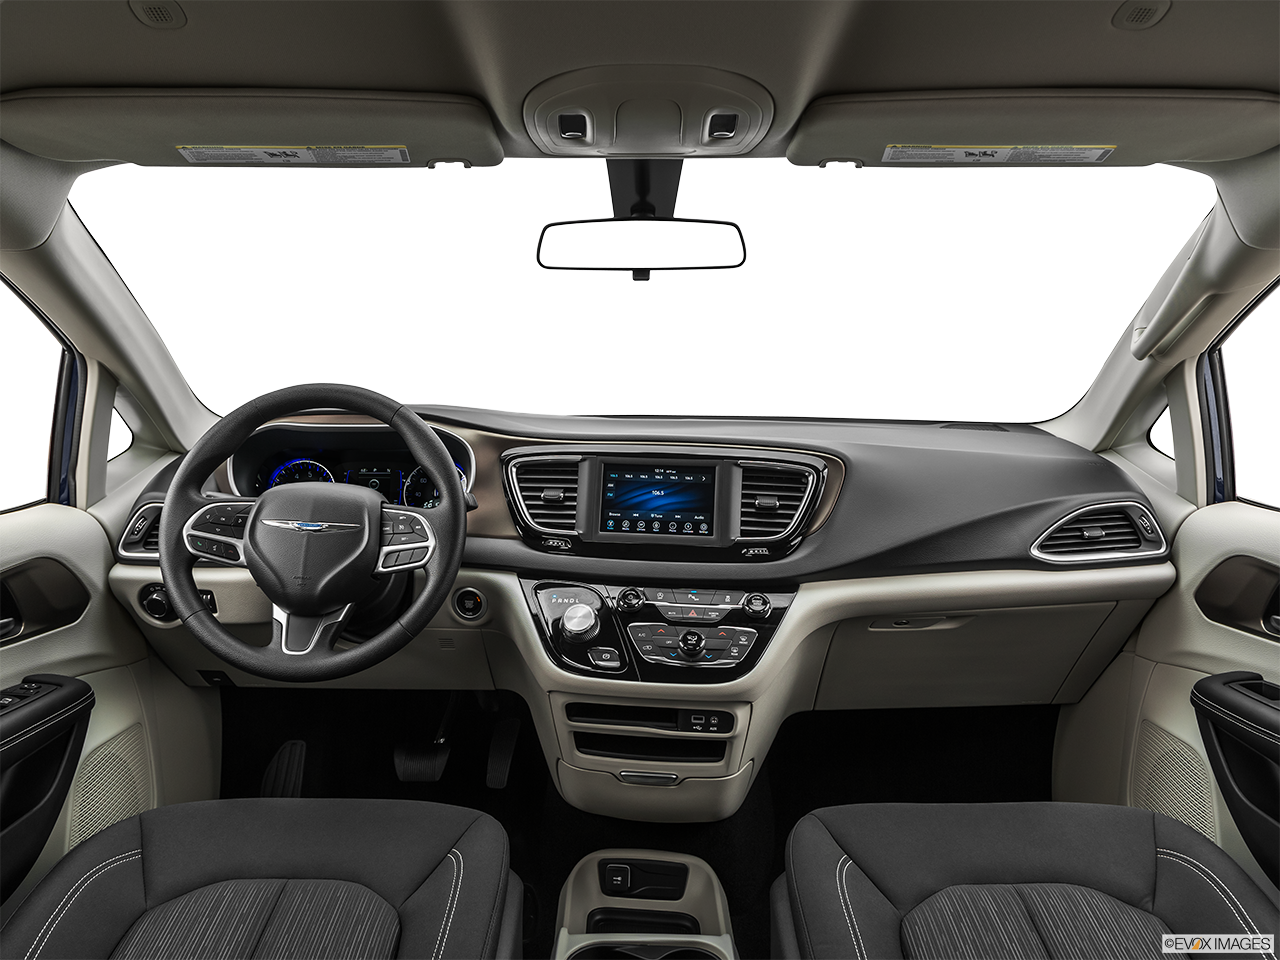 2020 Chrysler Voyager photo